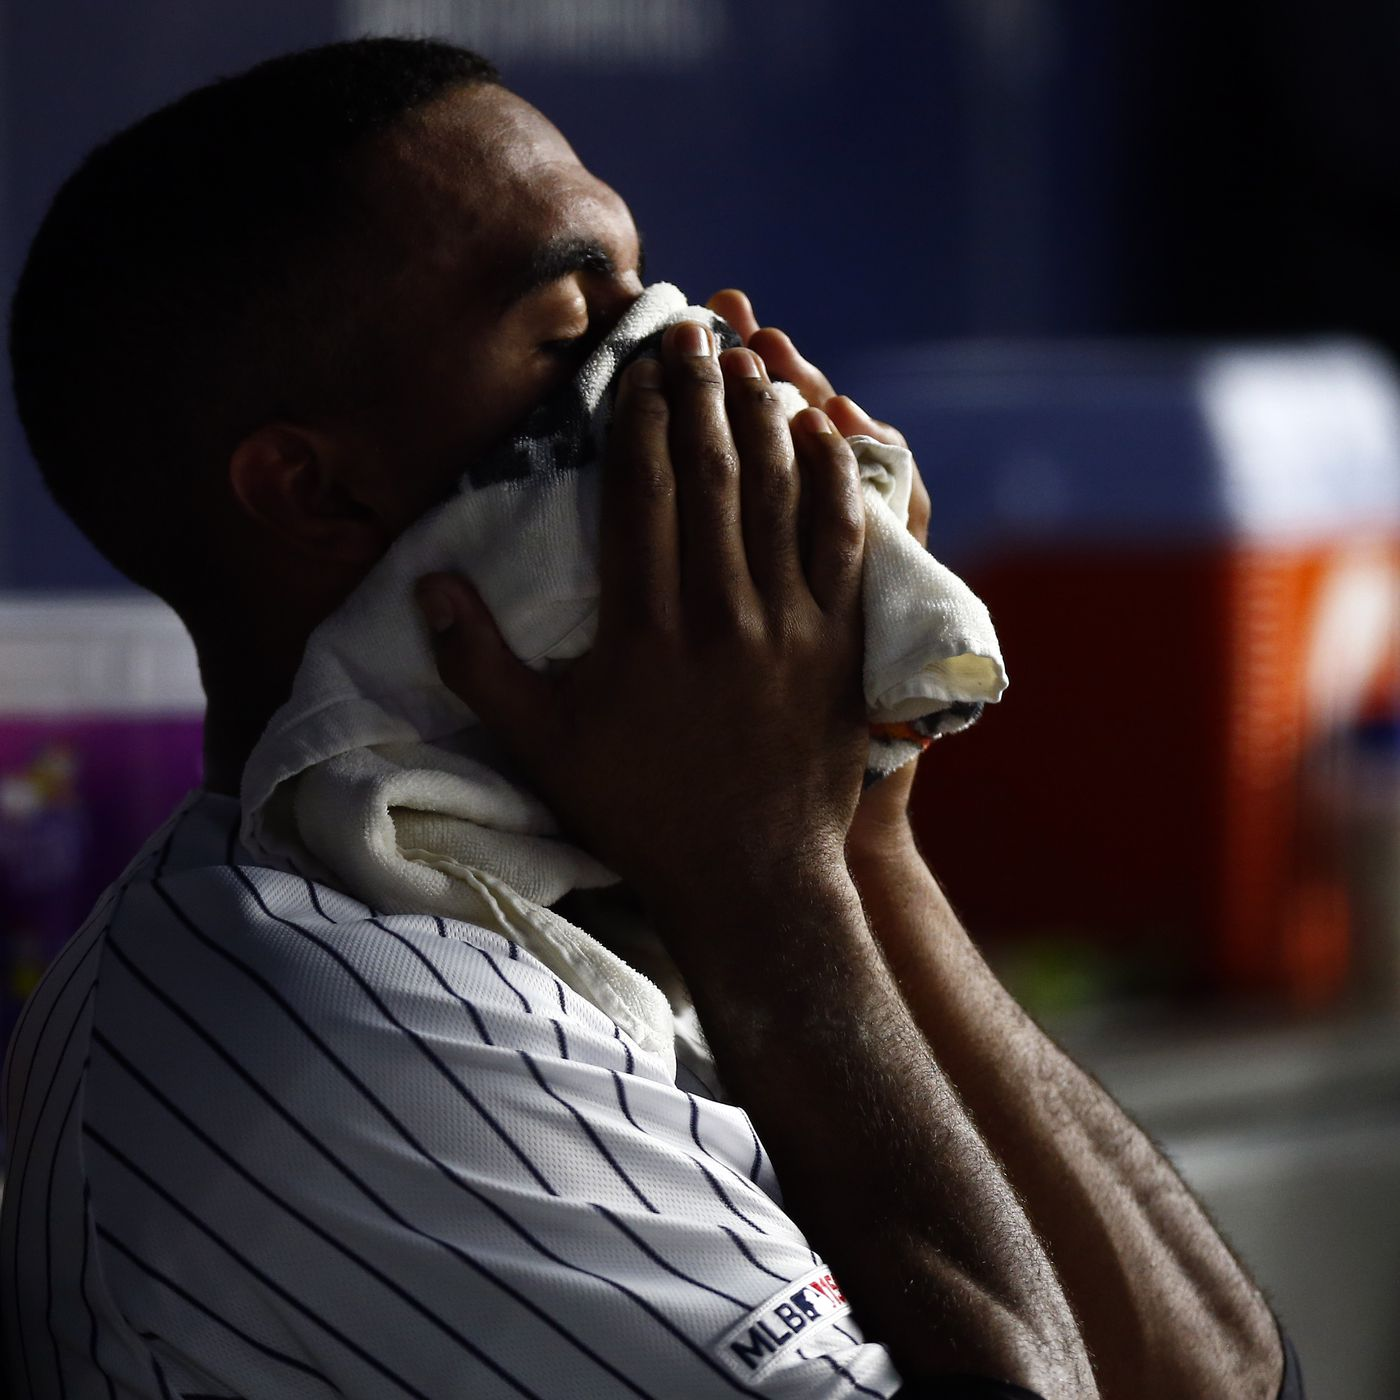 New York Yankees news: More injuries, of course - Pinstripe Alley